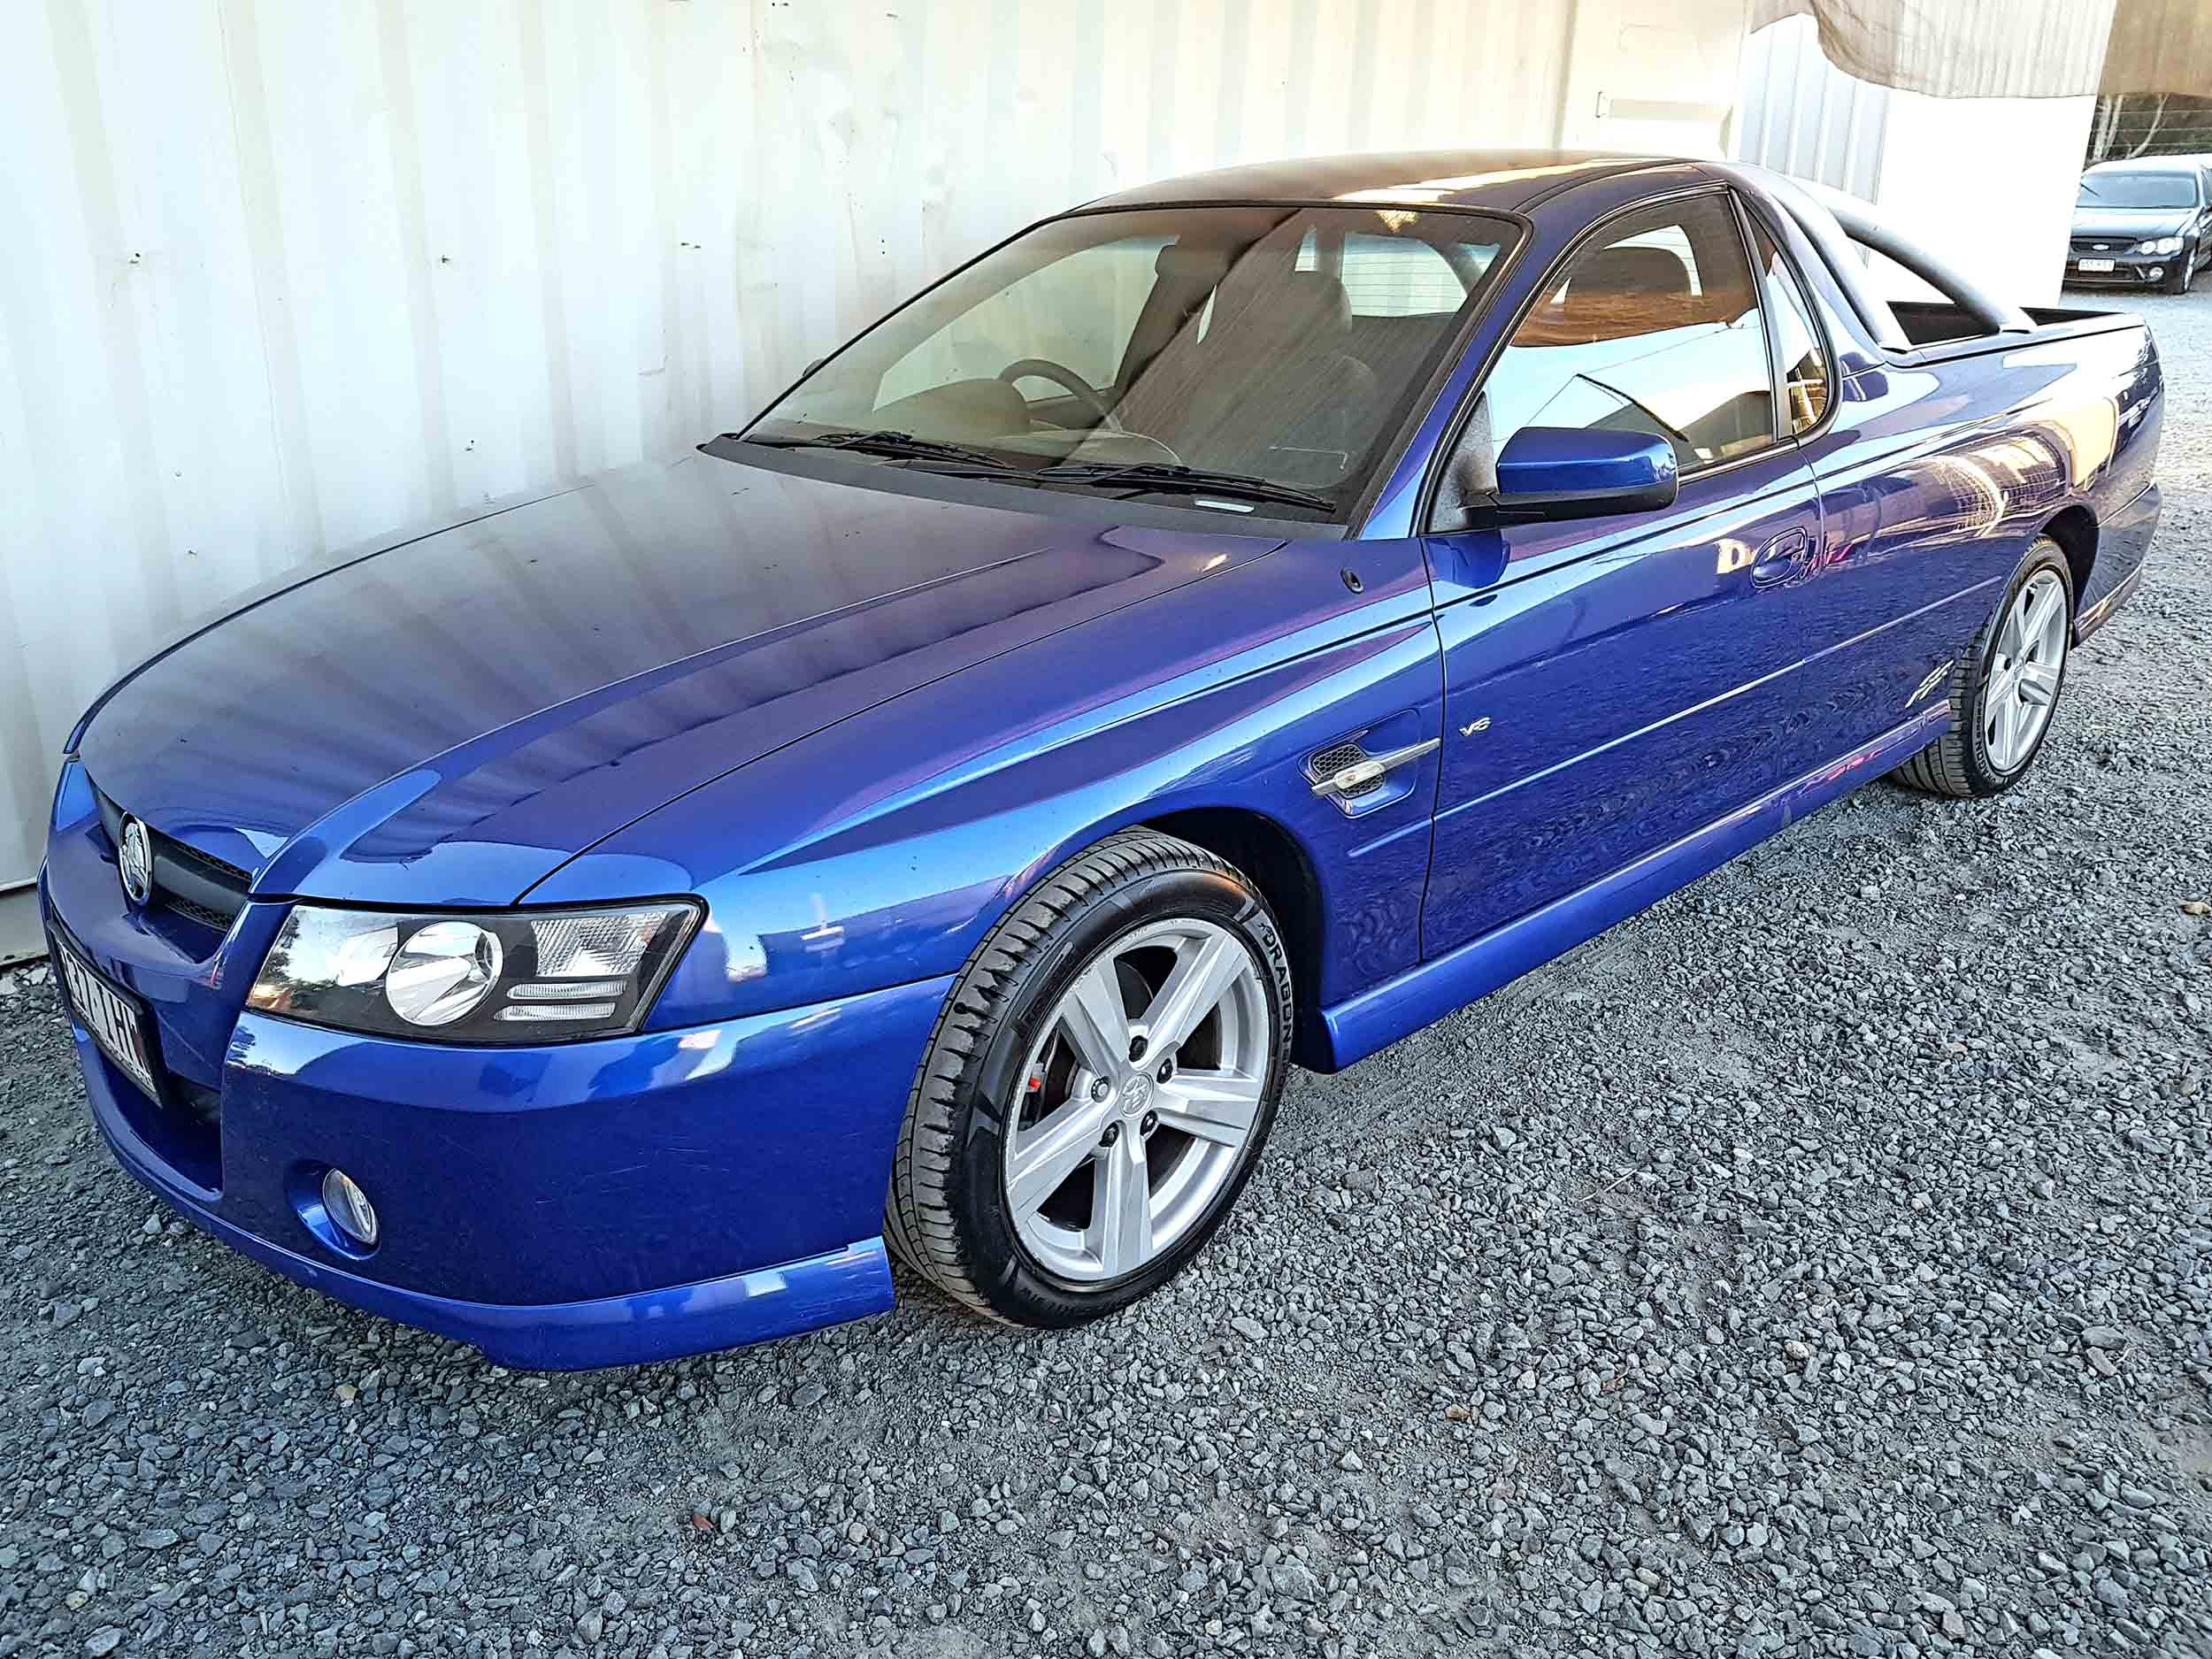 Automatic-Cars-Holden-Commodore-UTE-2004-for-sale-03